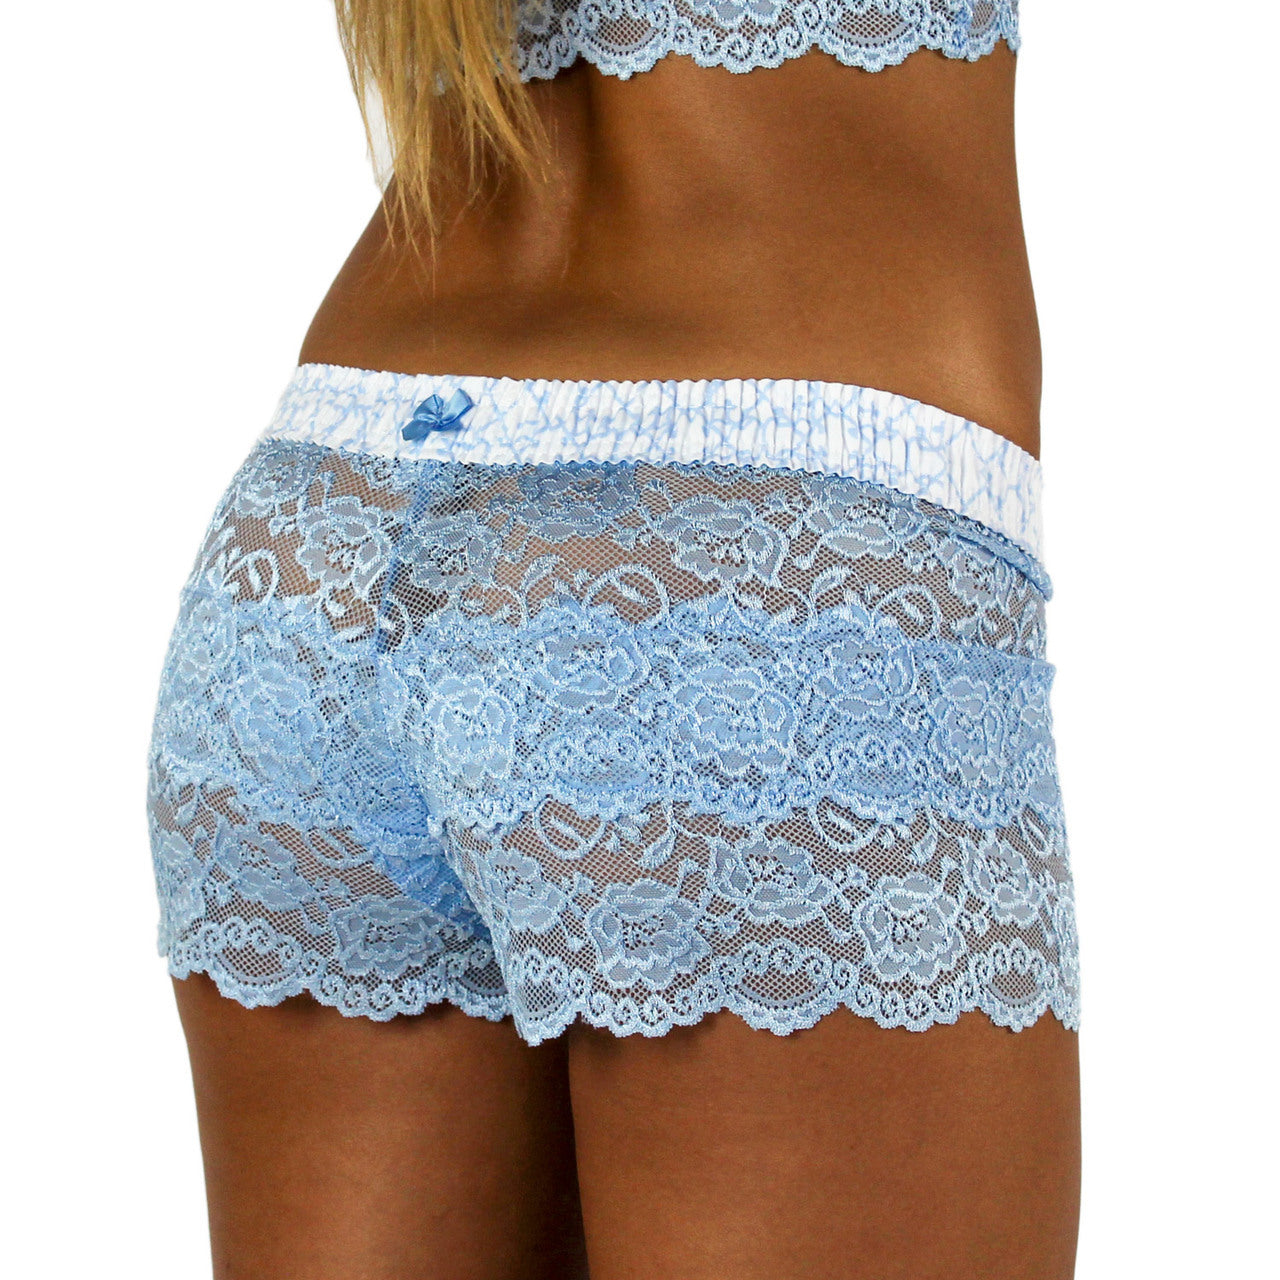 Foxers Light Blue Lace Boxers with Trellis Band